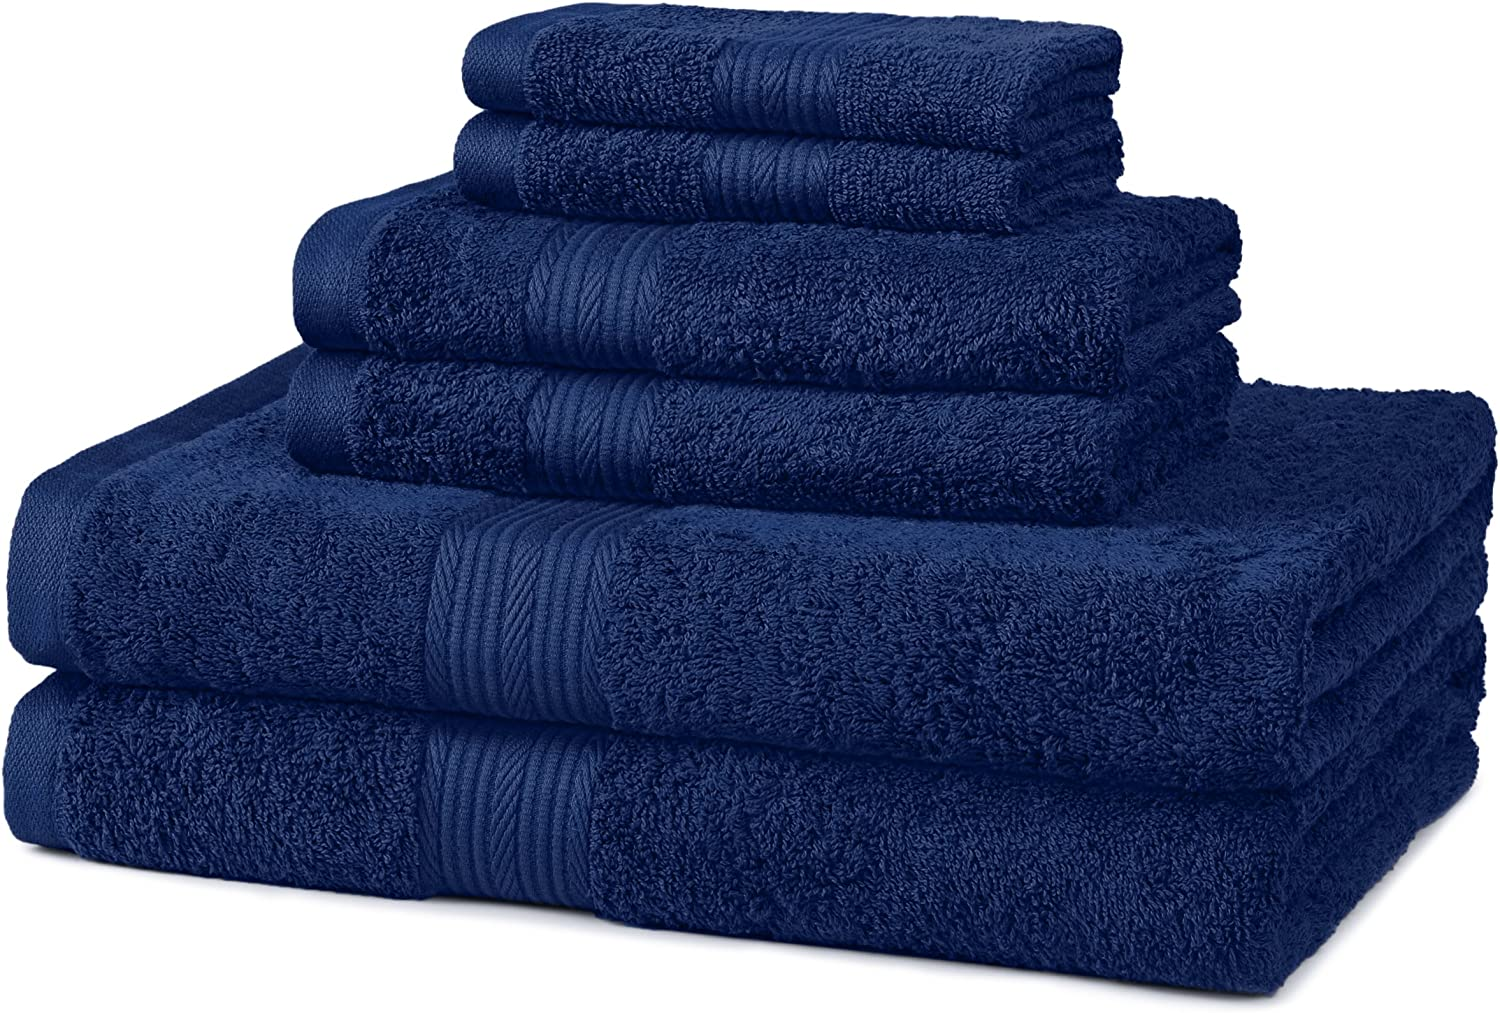 Basics 6-Piece Fade-Resistant Bath Towel Set - Navy Blue: Home & Kitchen